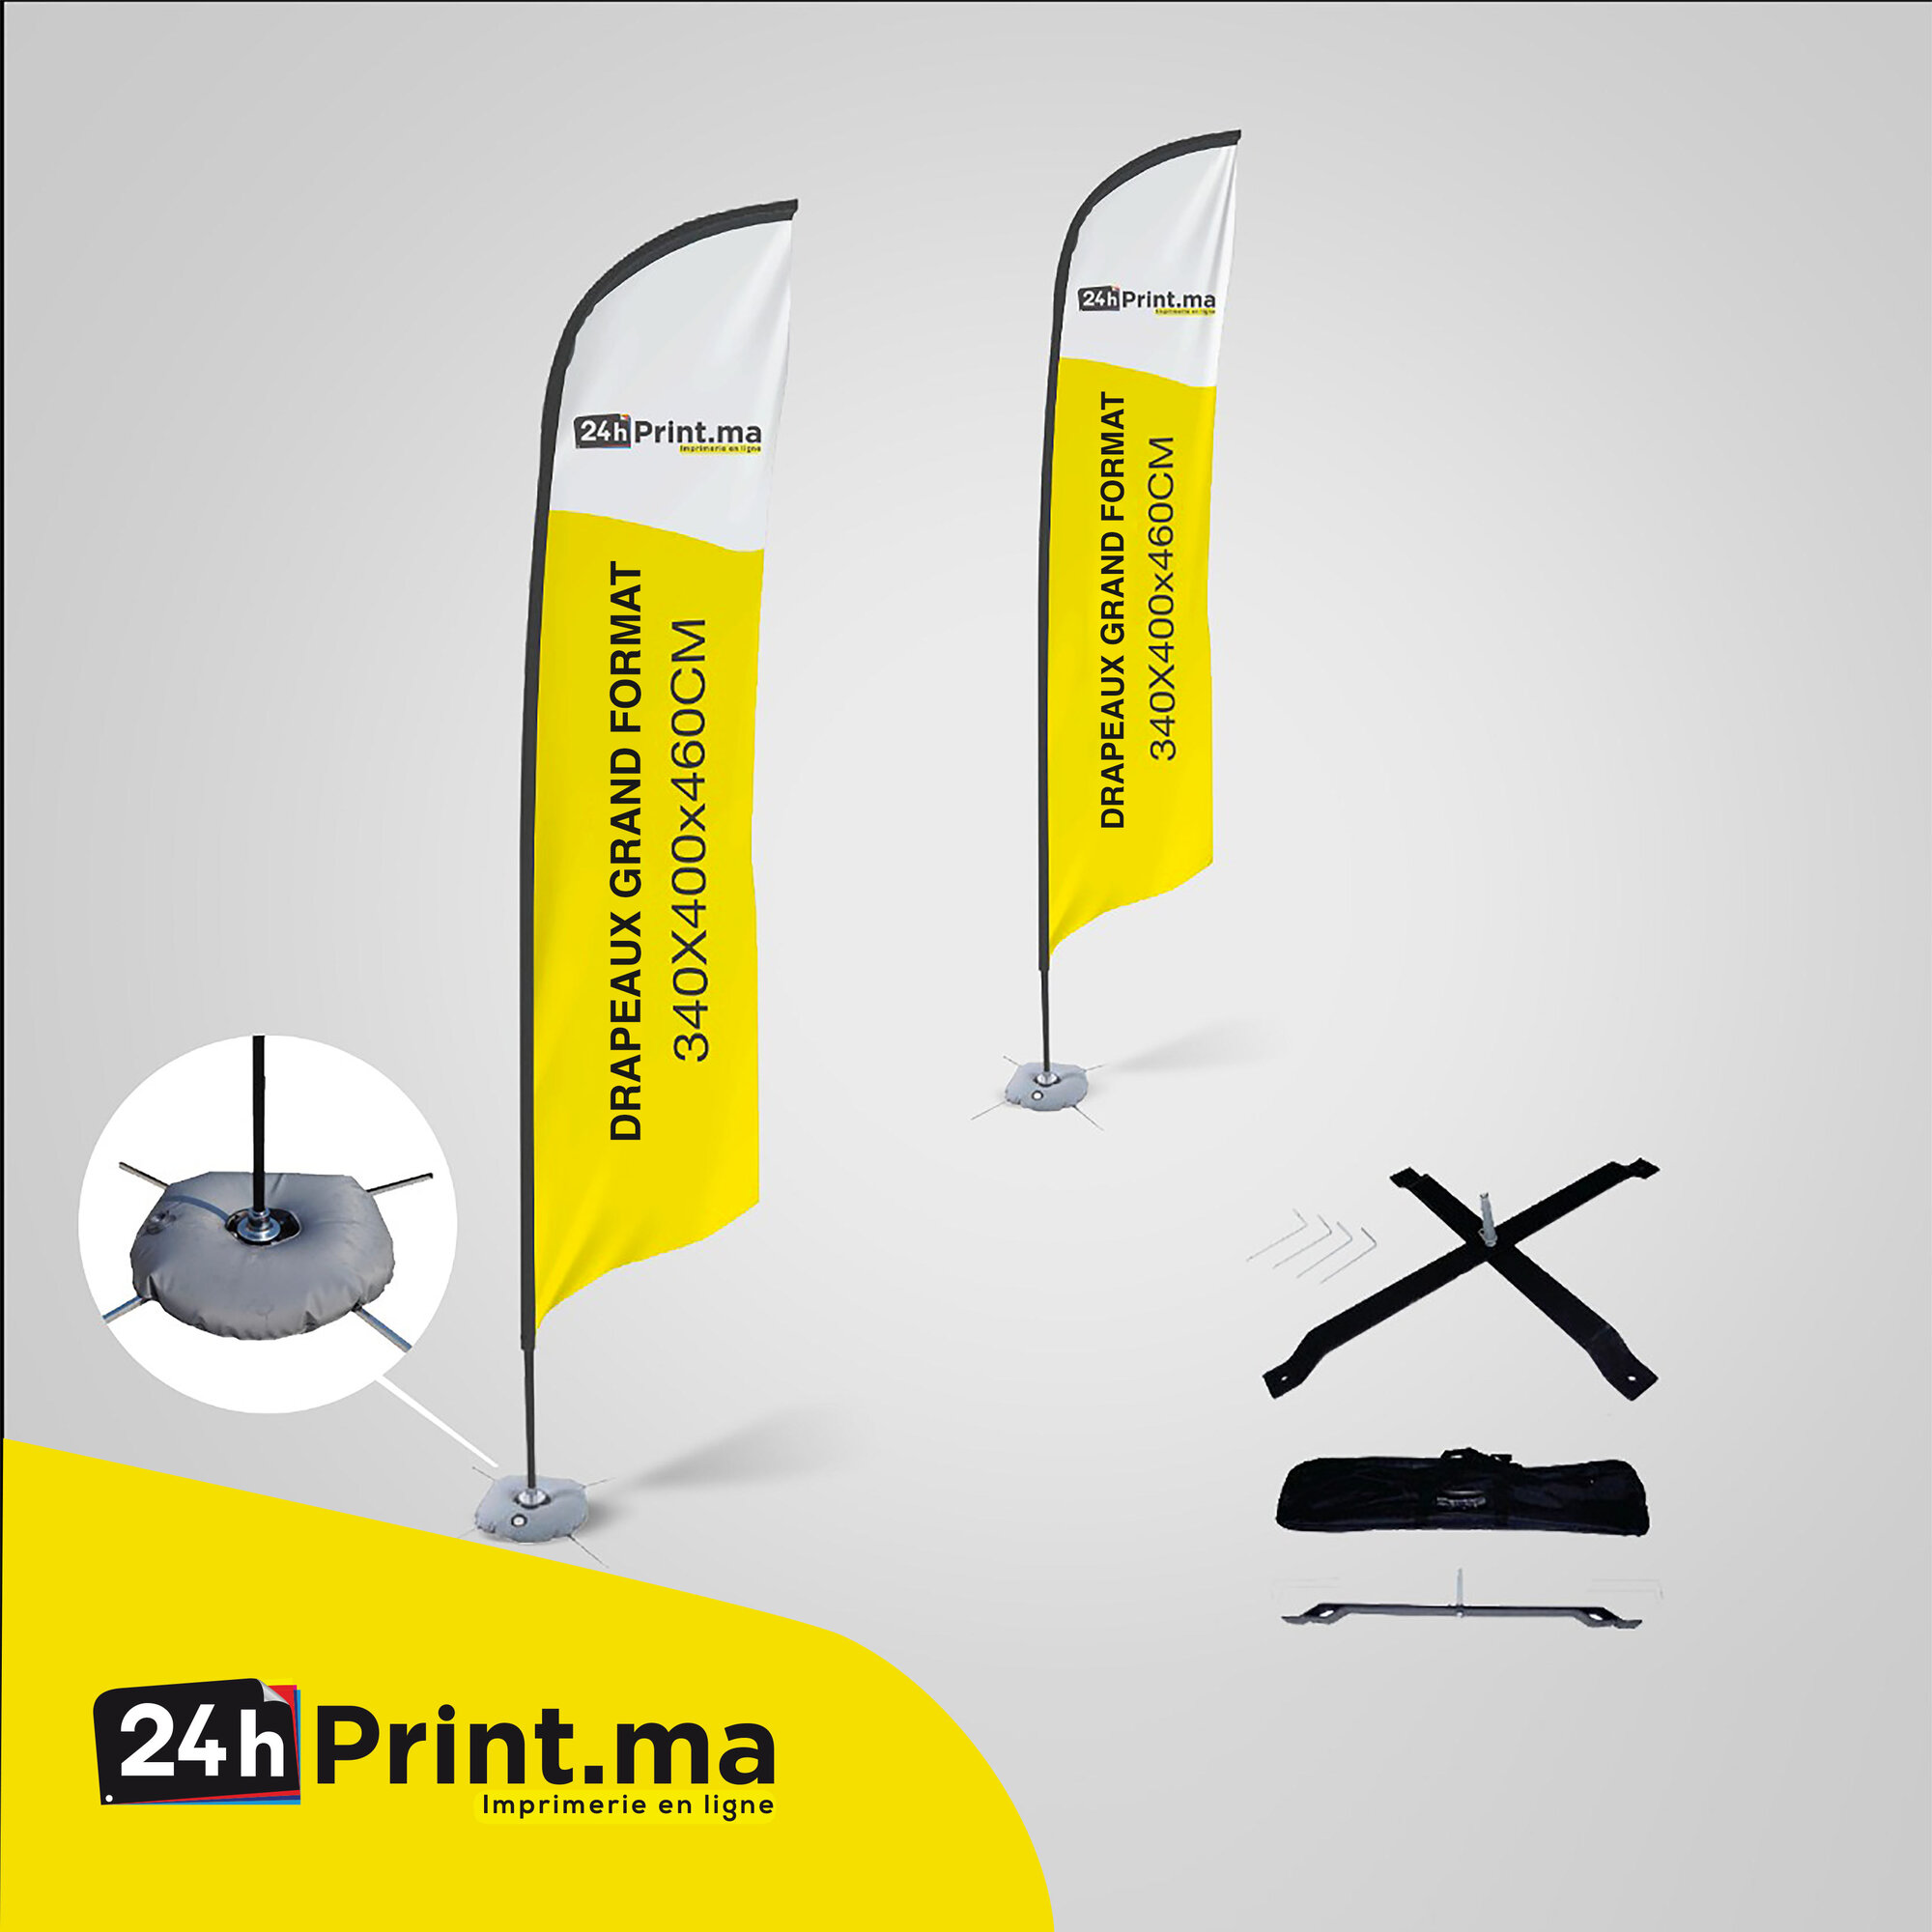 https://www.24hprint.ma/images/products_gallery_images/flags44.jpg